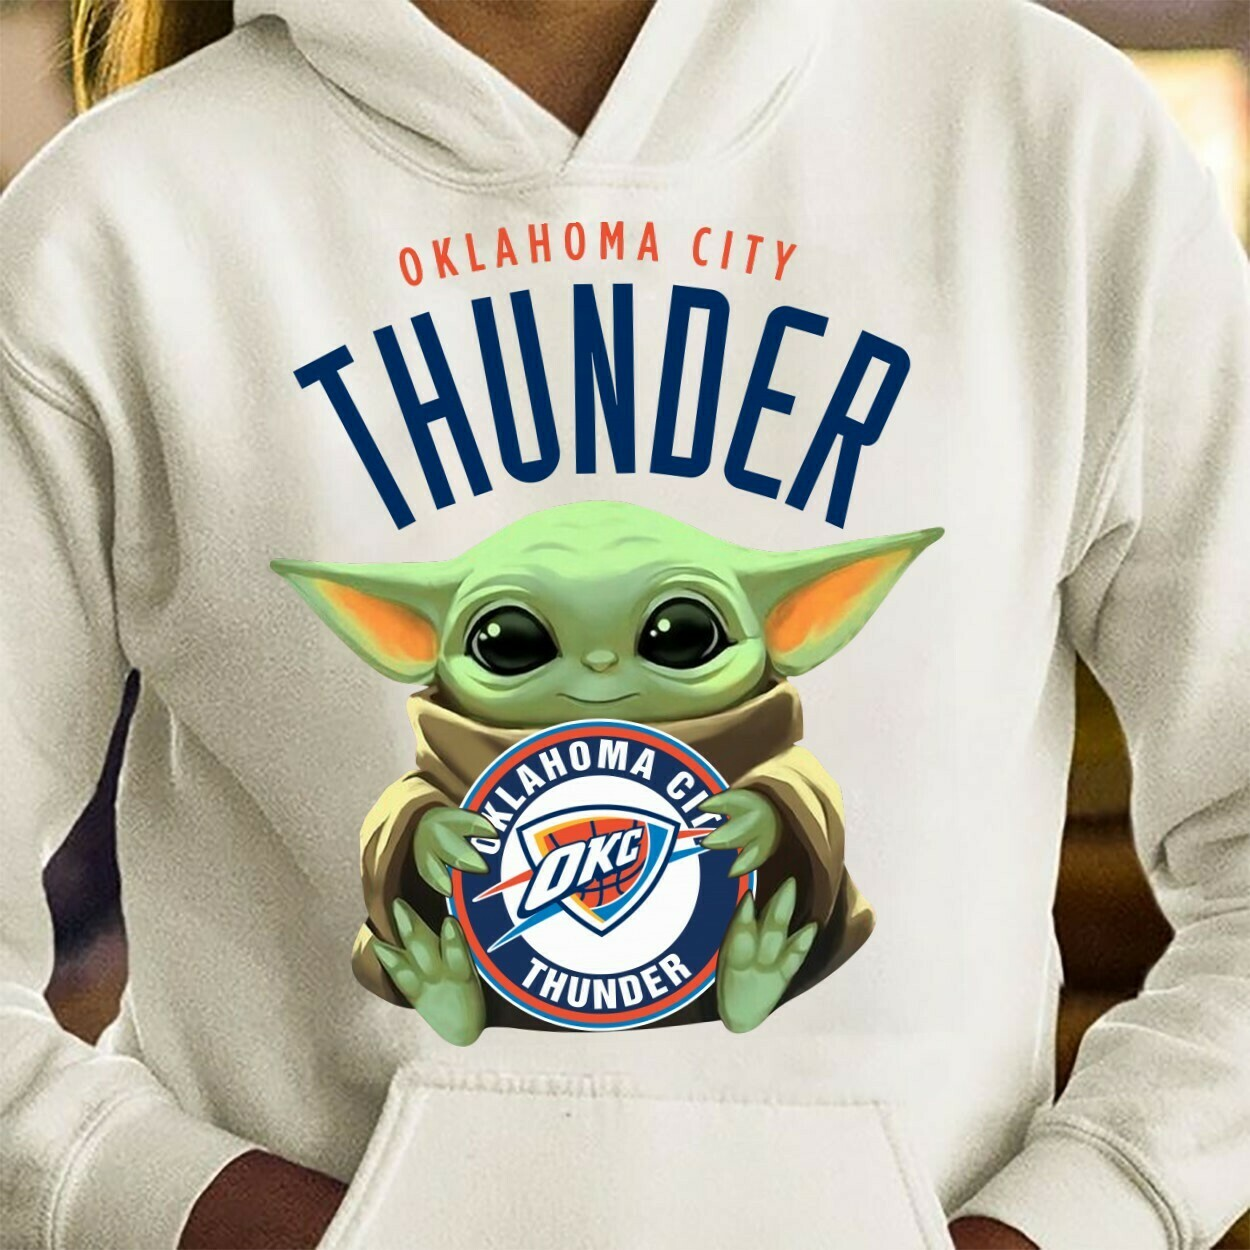 Oklahoma City Thunder Baby Yoda Star Wars The Mandalorian The Child First Memories Floating NBA Basketball Dad Mon Kid Fan Gift T-Shirt Long Sleeve Sweatshirt Hoodie Jolly Family Gifts